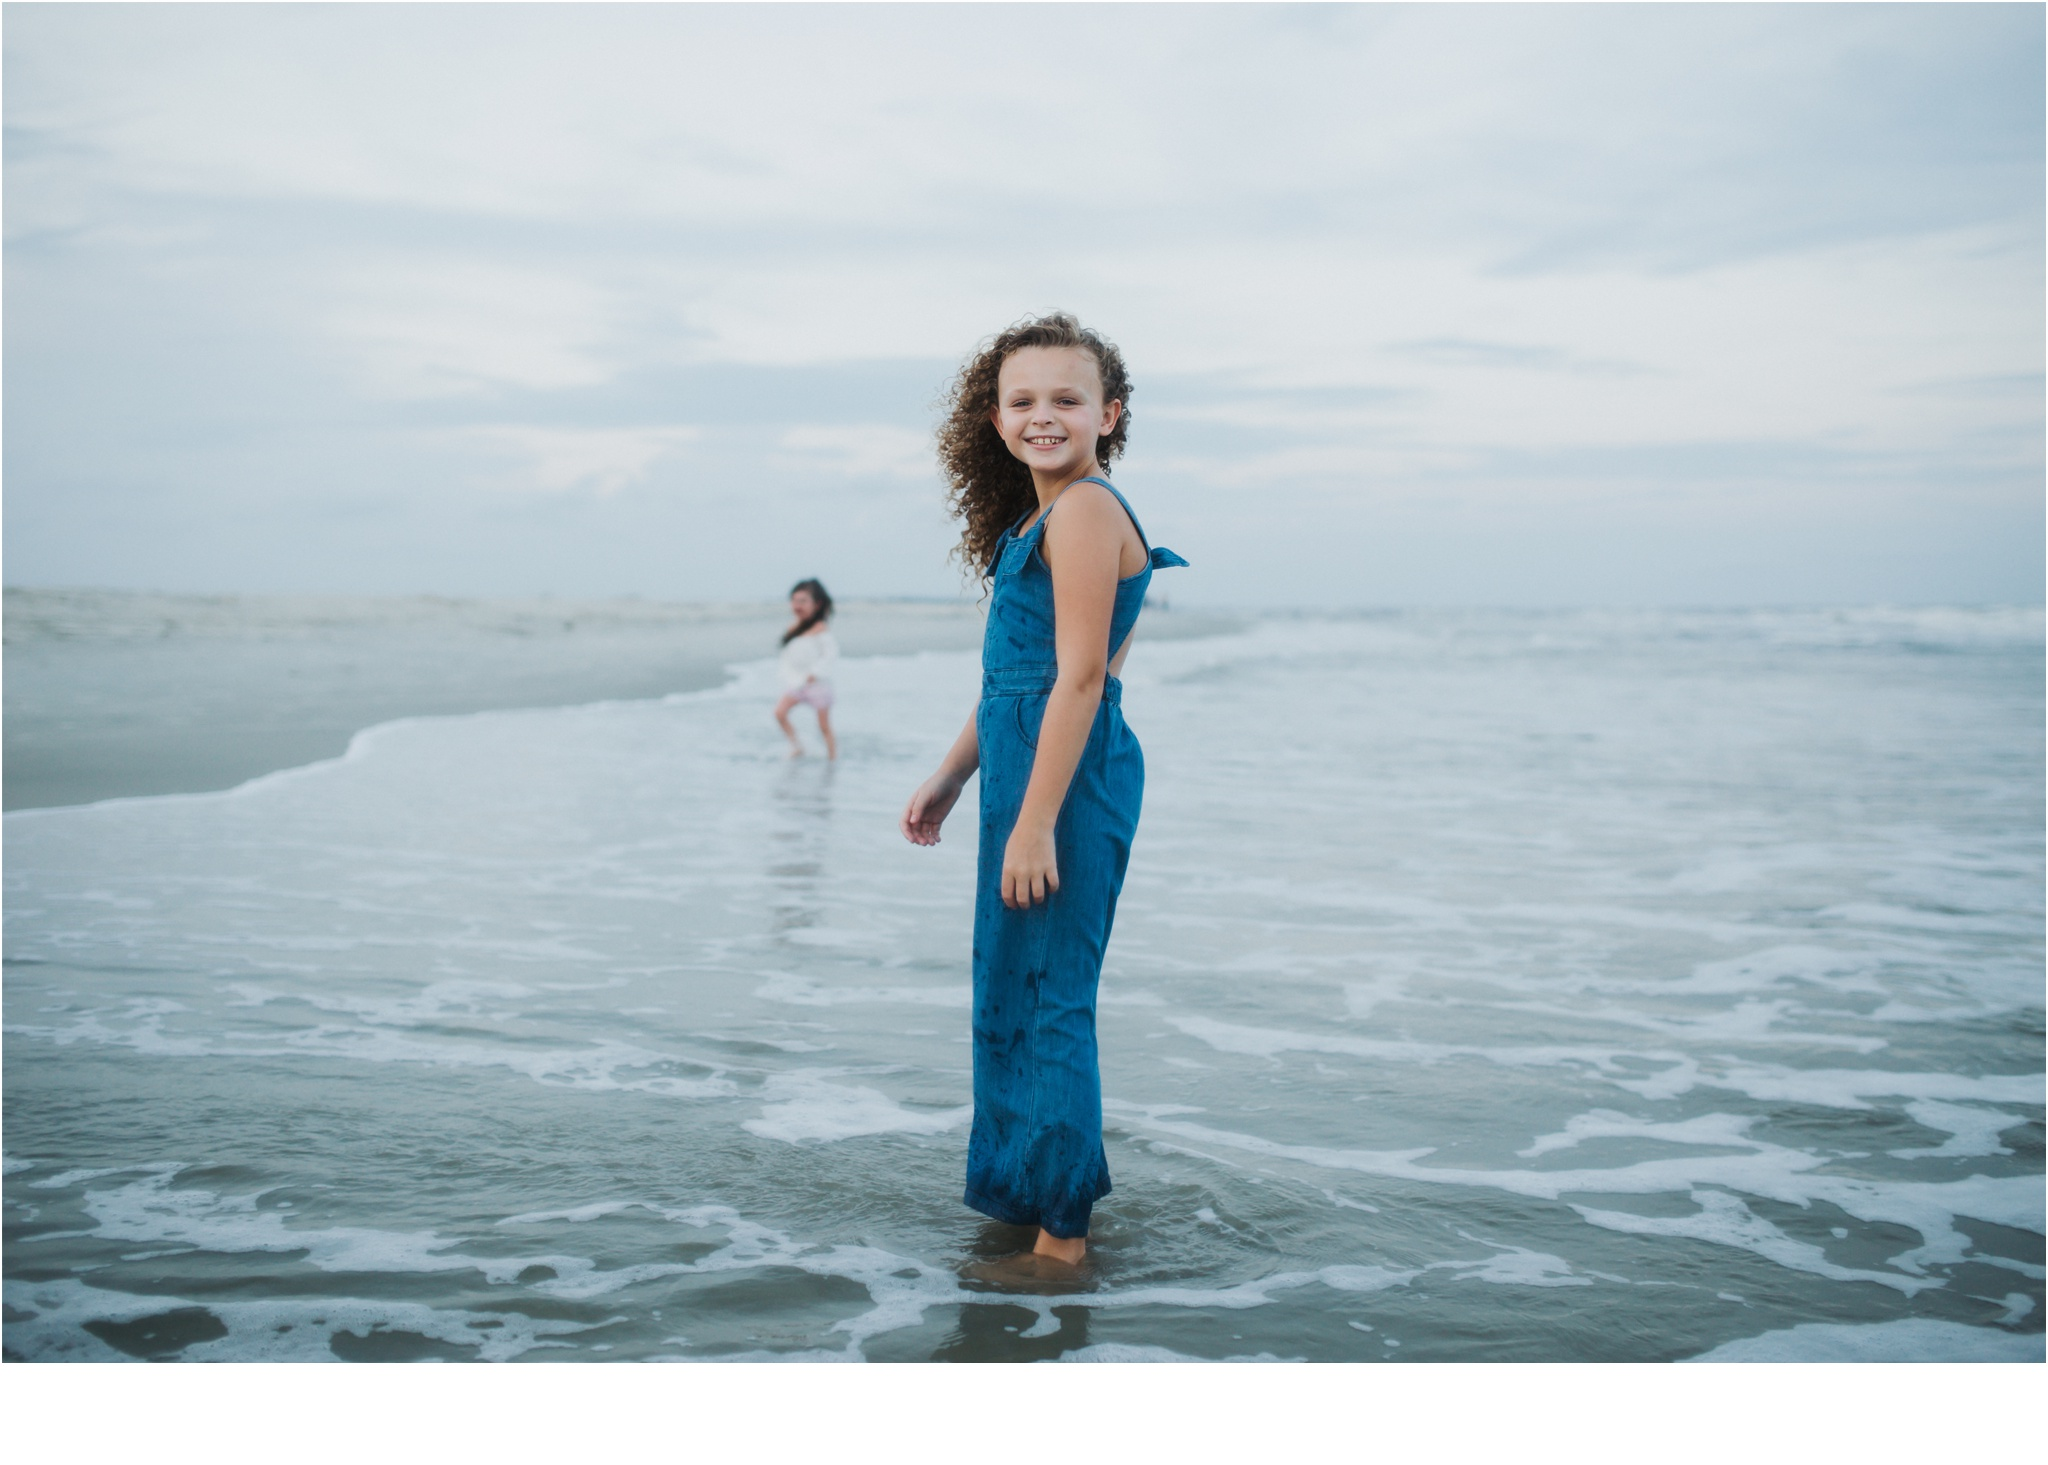 Rainey_Gregg_Photography_St._Simons_Island_Georgia_California_Wedding_Portrait_Photography_1090.jpg